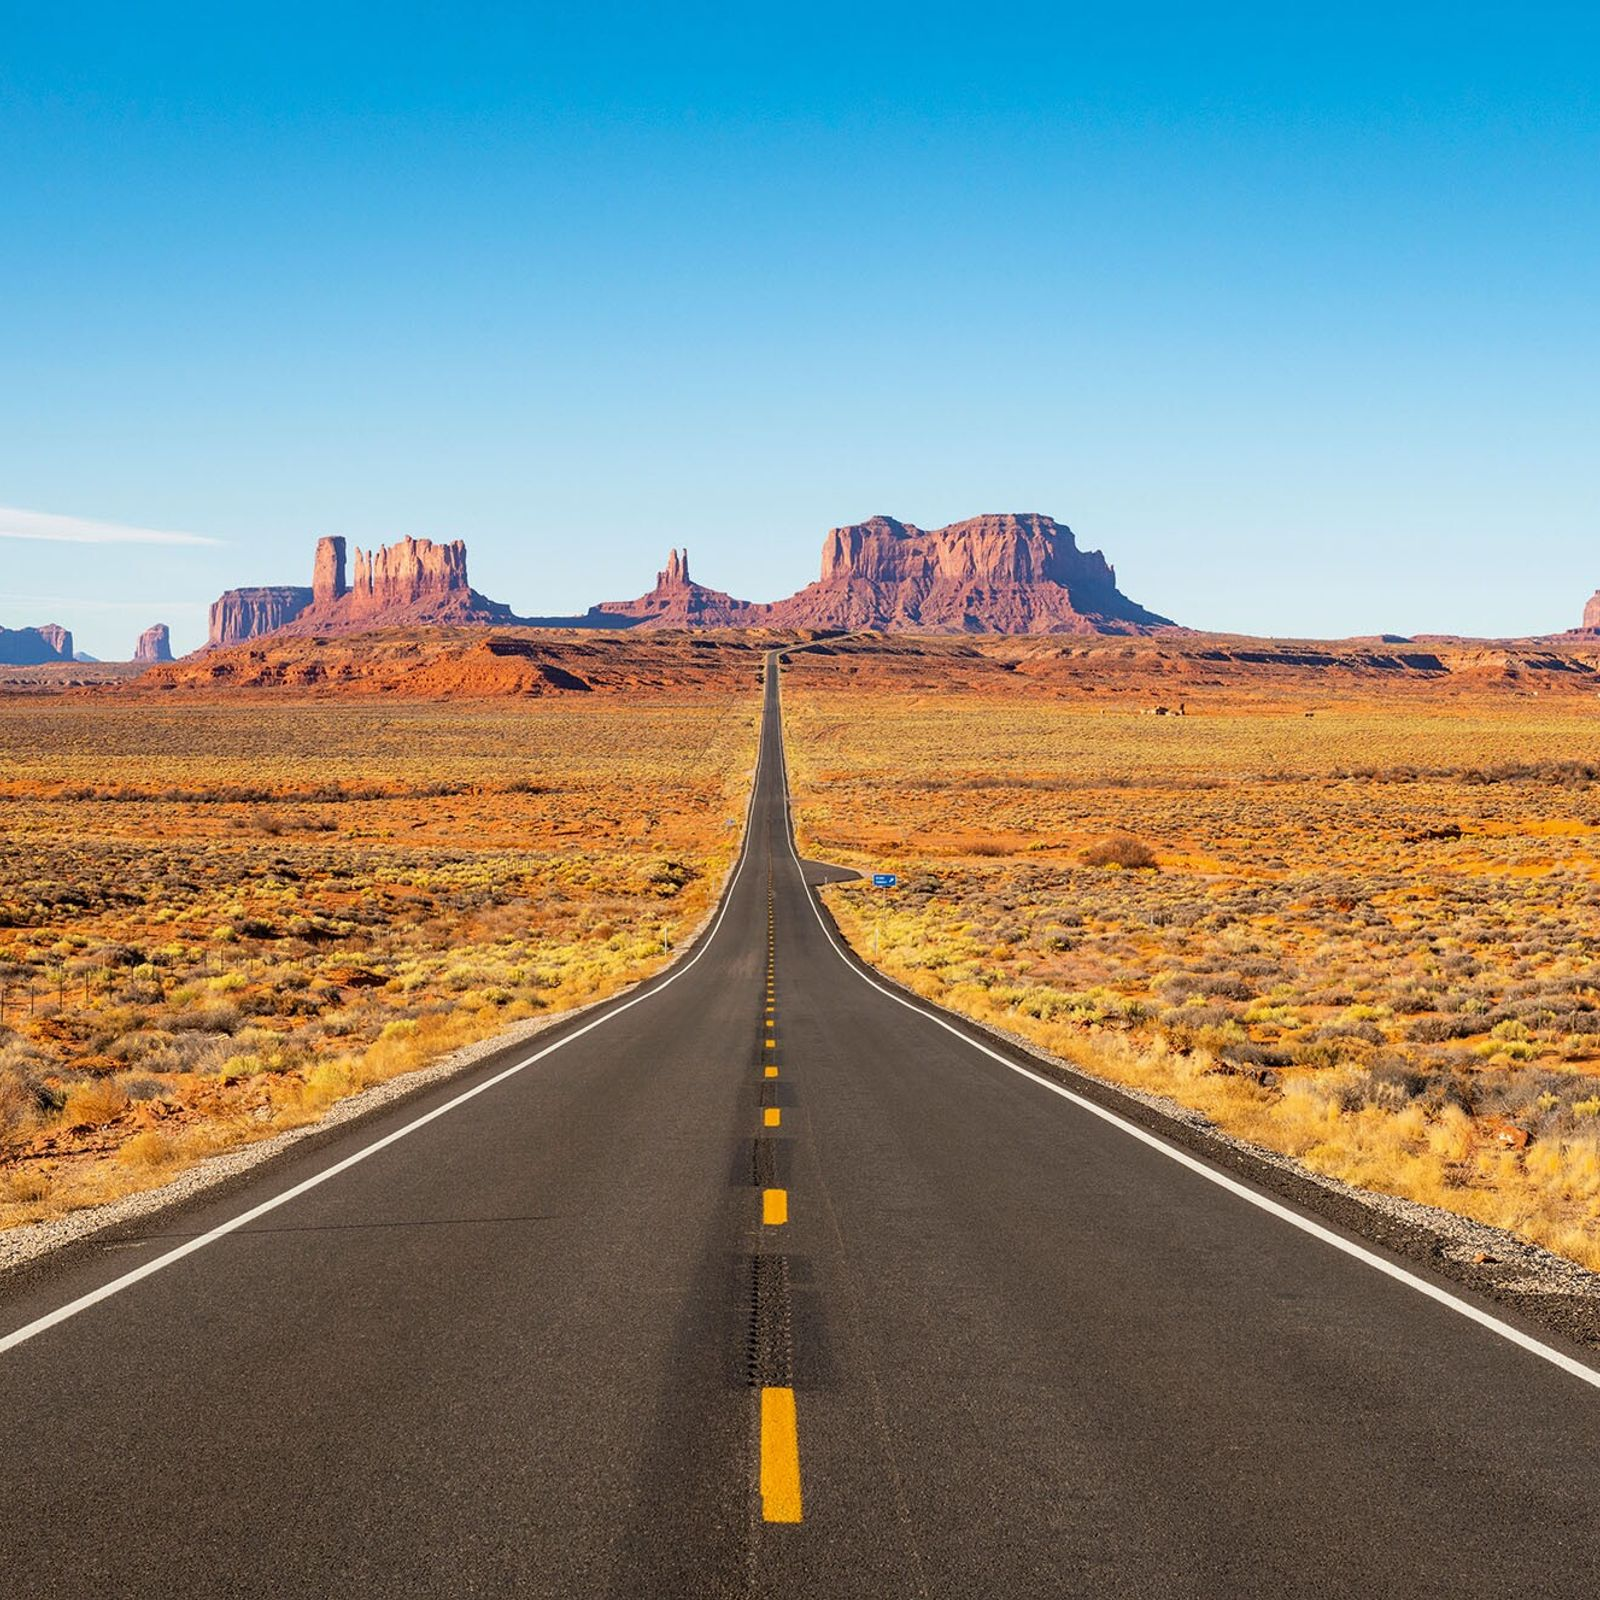 Highway 163 slices through the wild, rocky landscape of Utah. The road is nicknamed 'Forrest Gump ...